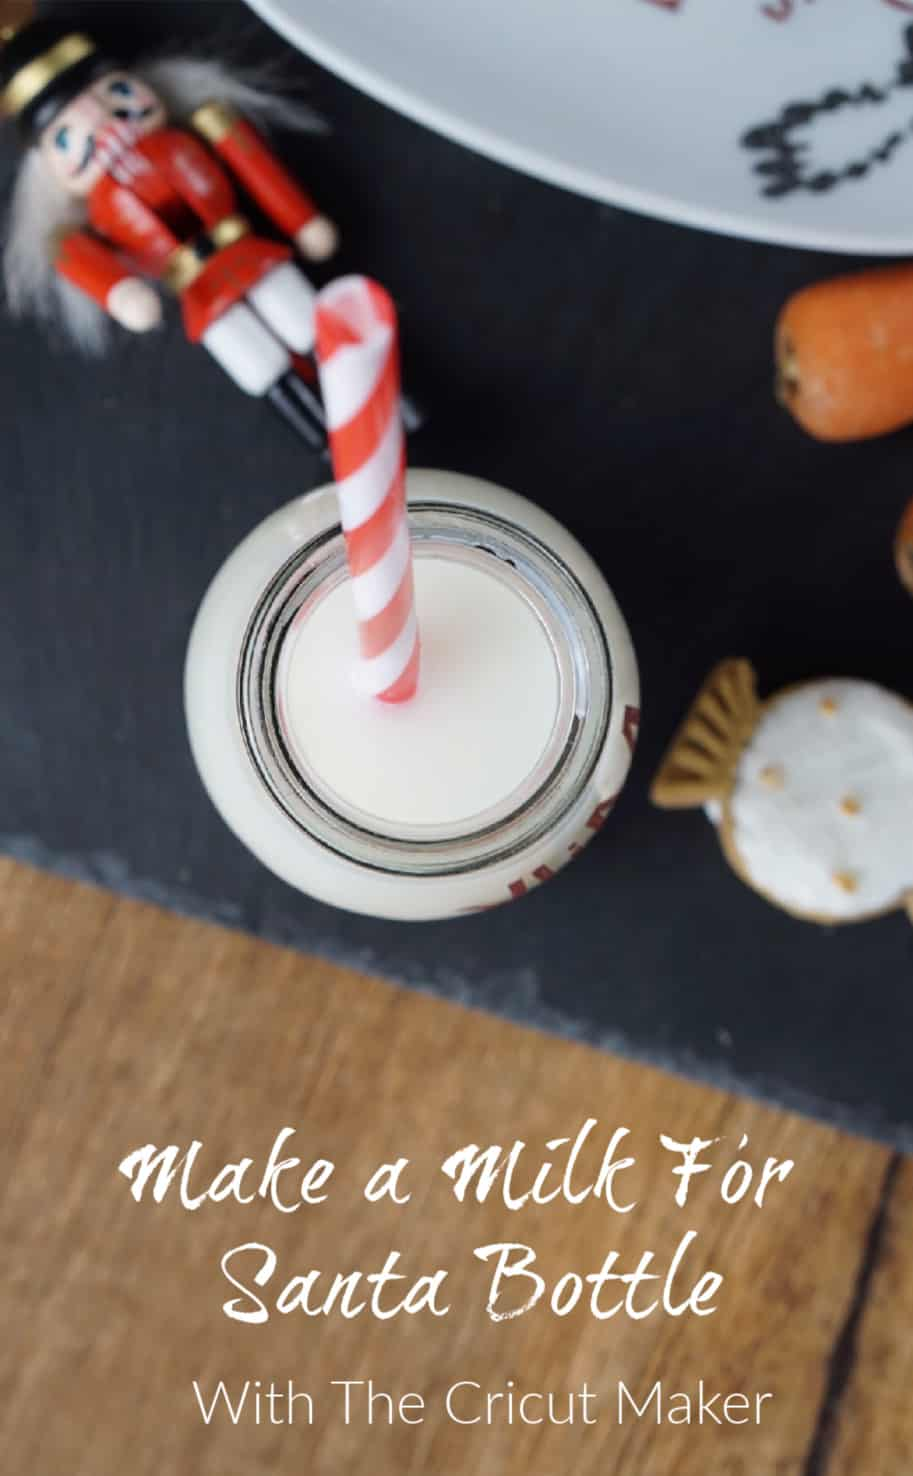 Make a milk for Santa bottle with the Cricut Maker and vinyl